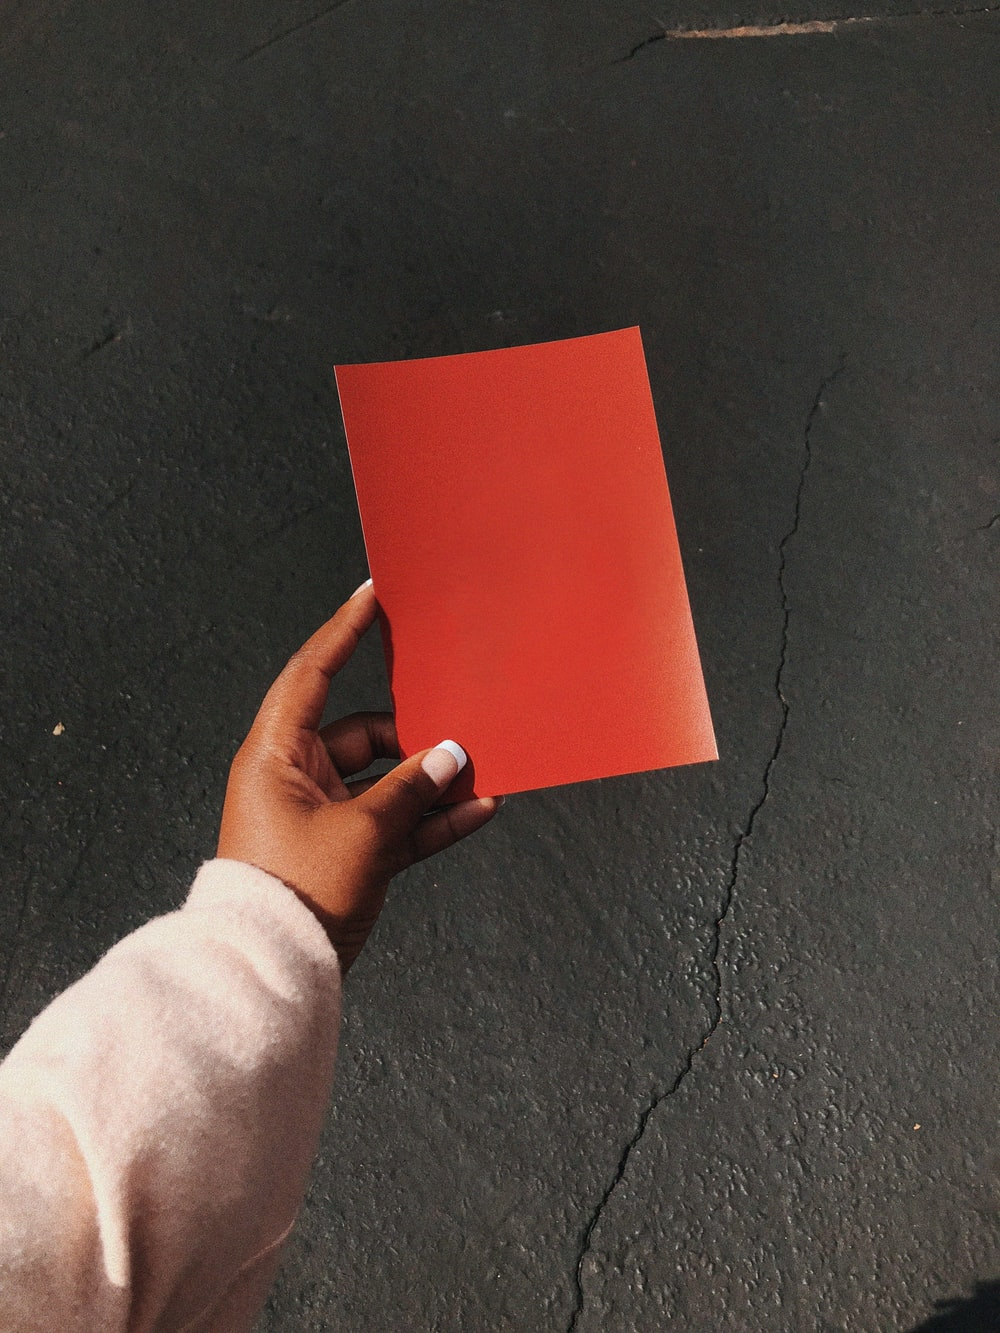 person holding red paper